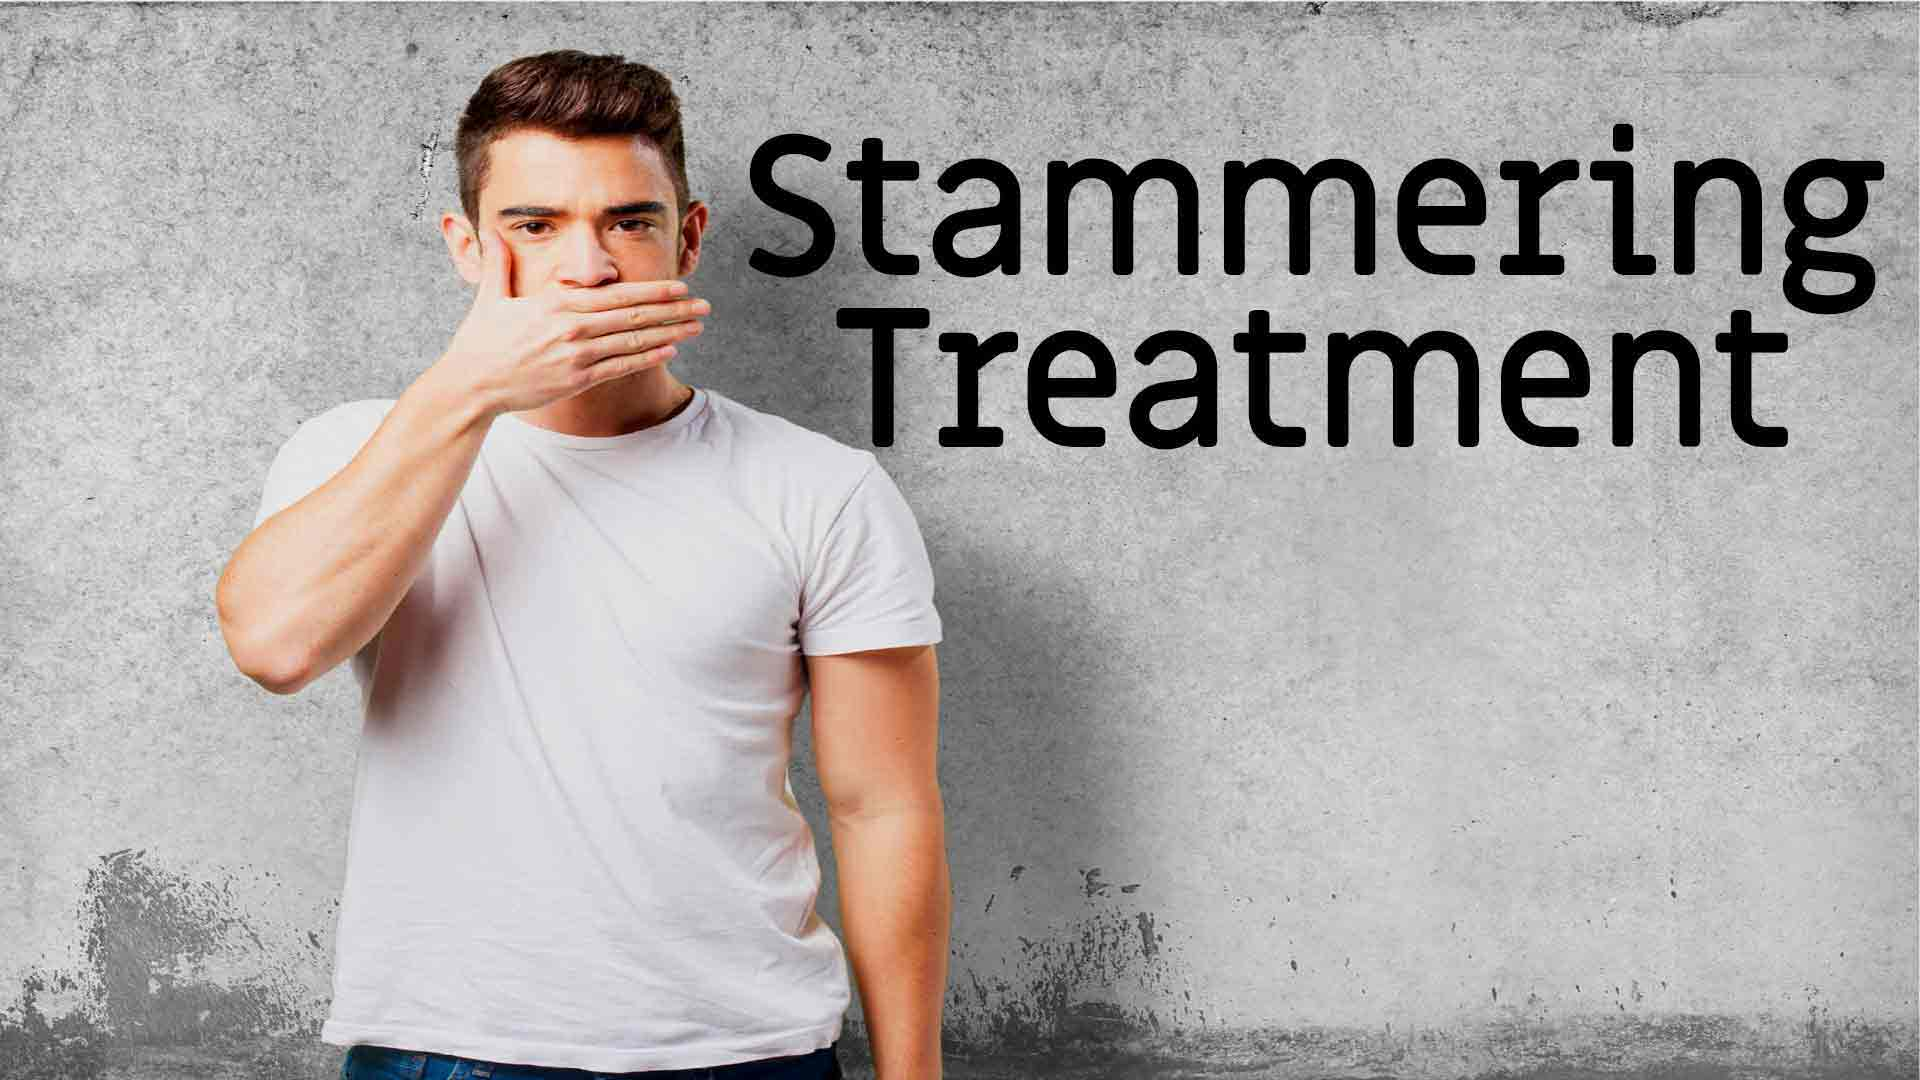 Stammering Treatment in Nagpur-Speech Therapy | Dr ...